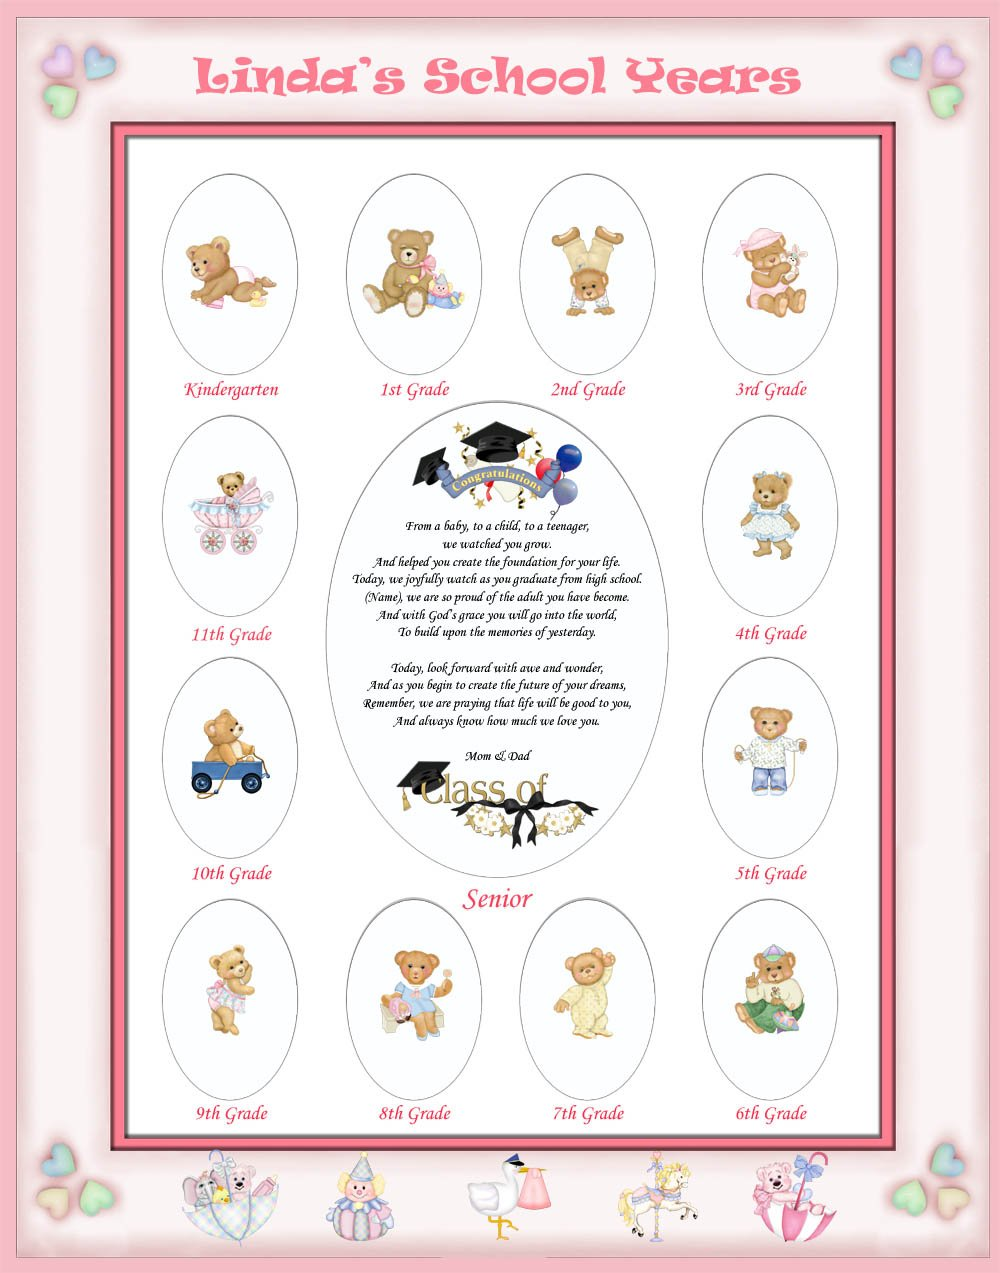 16 X 20 Size Personalized Baby Name Pink Candy Hearts Border My School Years Picture Photo Mat with Teddy Bear Illustration and Poem Verse As Birthday, Baby Girl Shower or Nursery Newborn Gifts